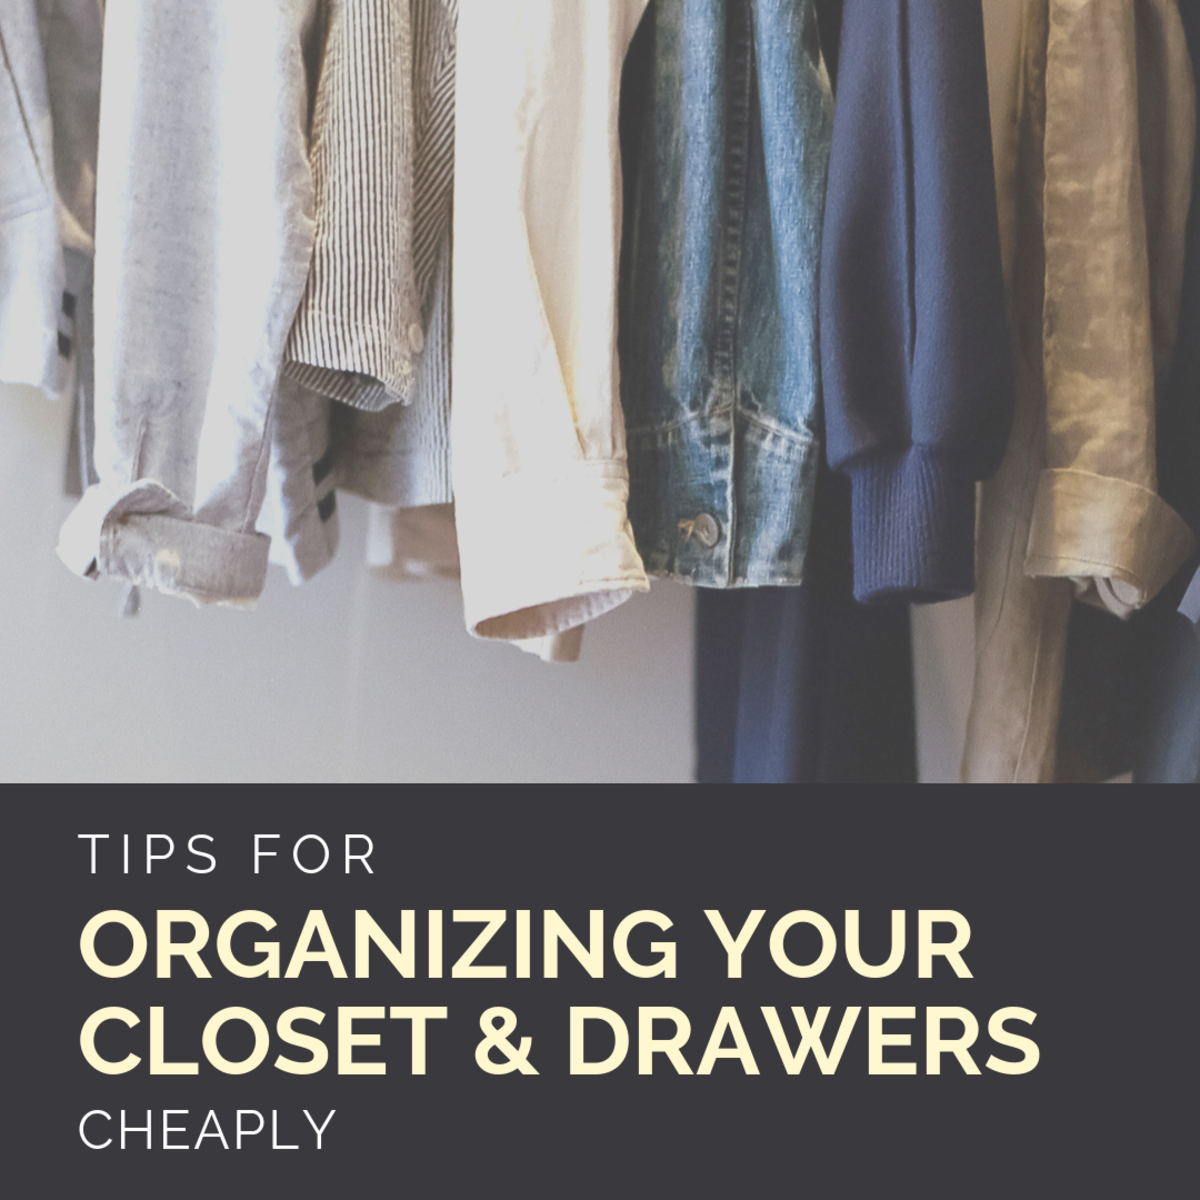 How to Cheaply Organize Your Closet and Drawers